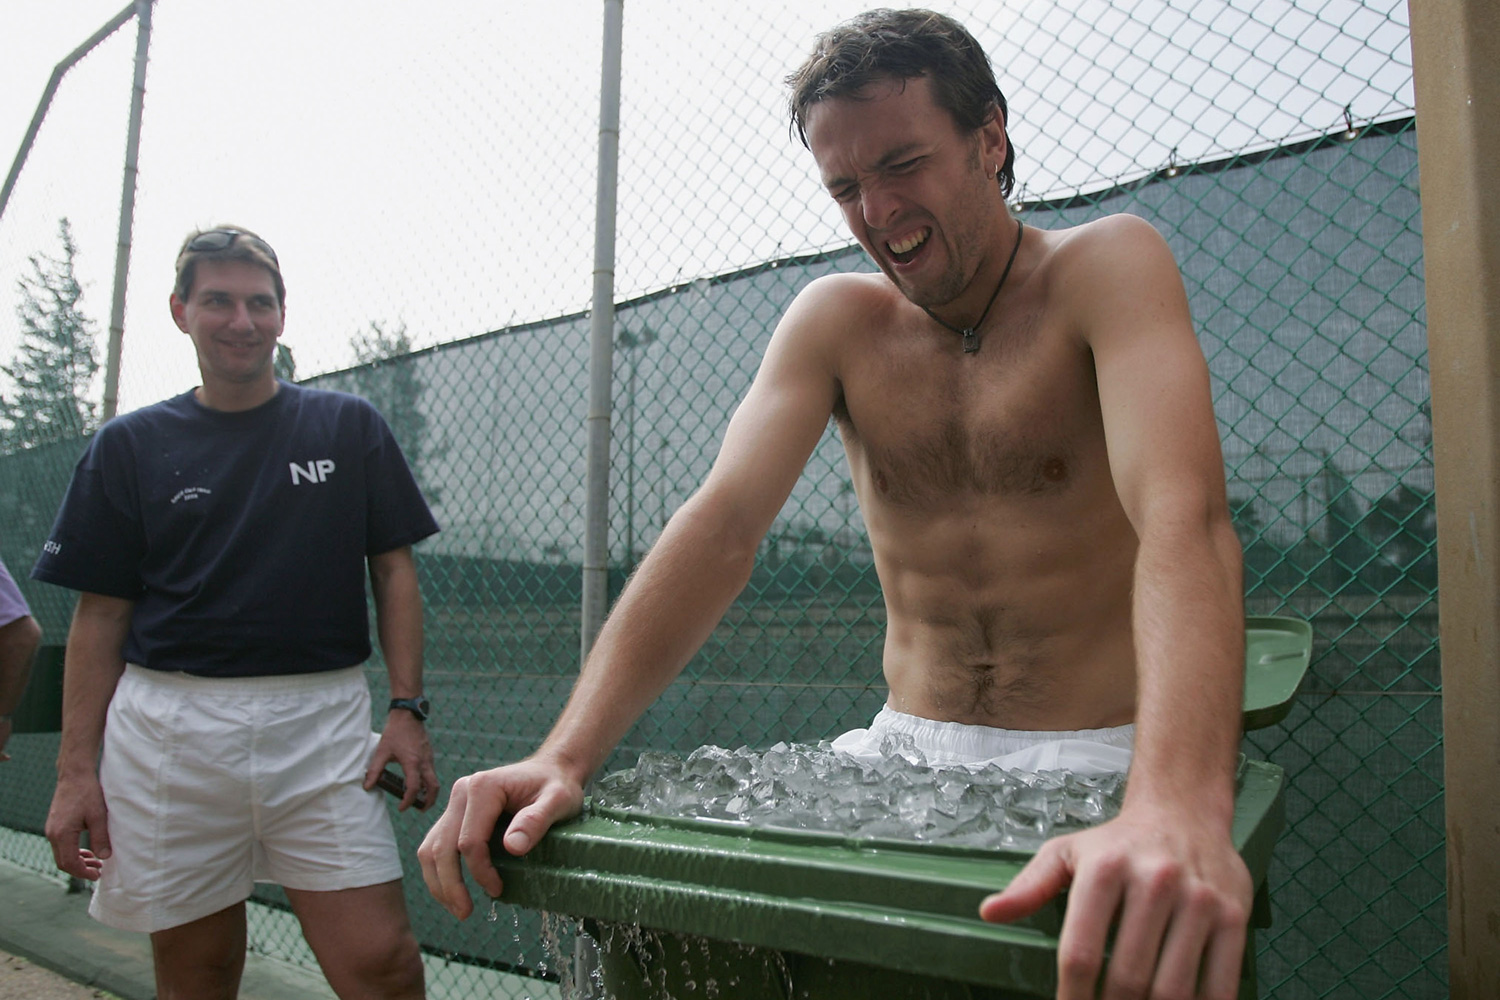 "Lee Childs, who was once hailed as ""the future of British tennis,"" eases into an ice bath as his coach looks on, watching Childs suffer."